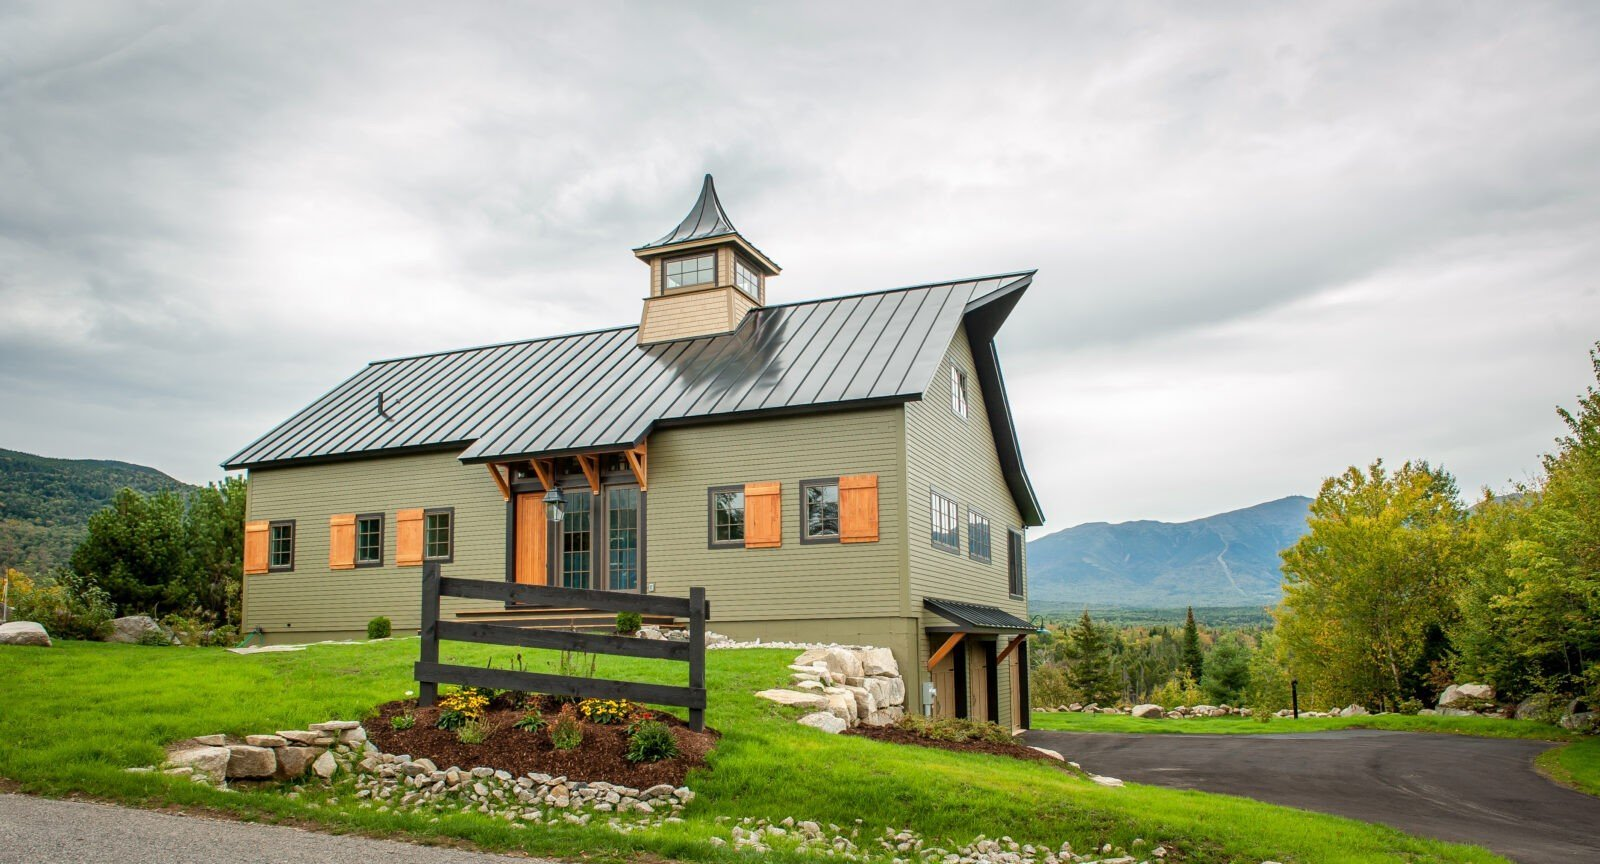 Top notch barn home plans from the ybh design team for Barn inspired house plans